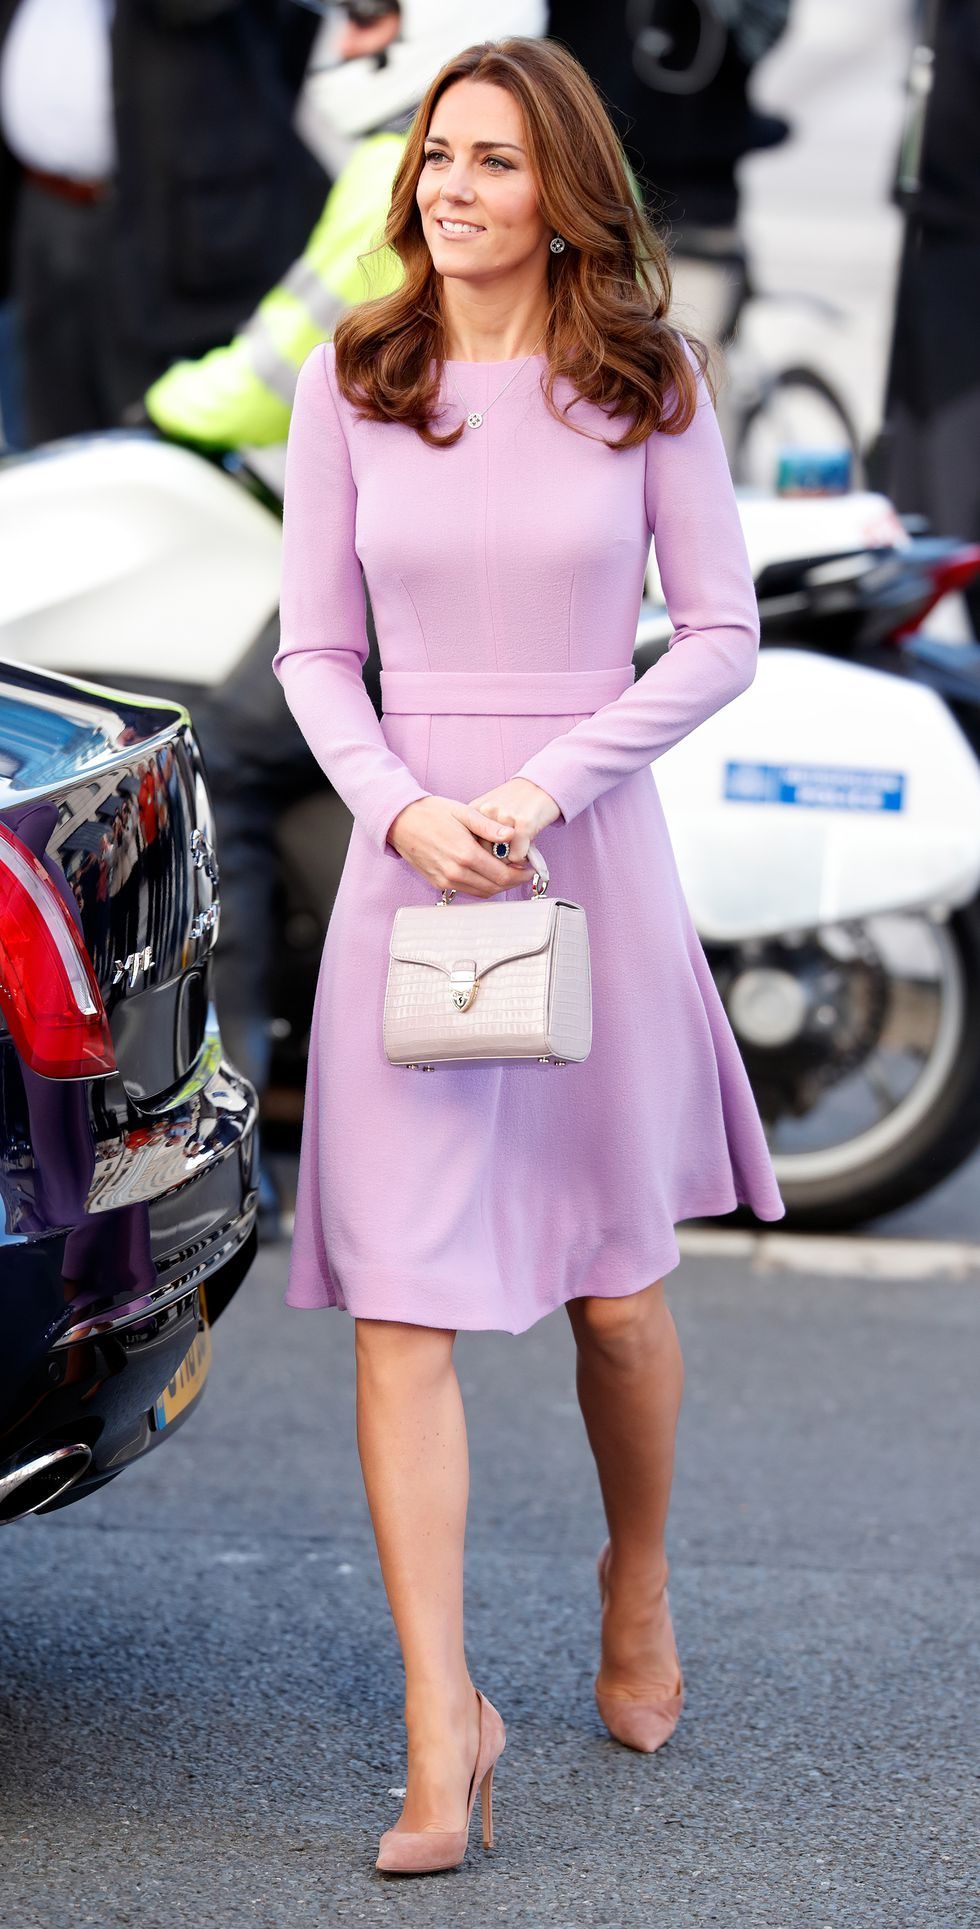 867ffbafce Kate Middleton s Best Style Moments - The Duchess of Cambridge s Most  Fashionable Outfits